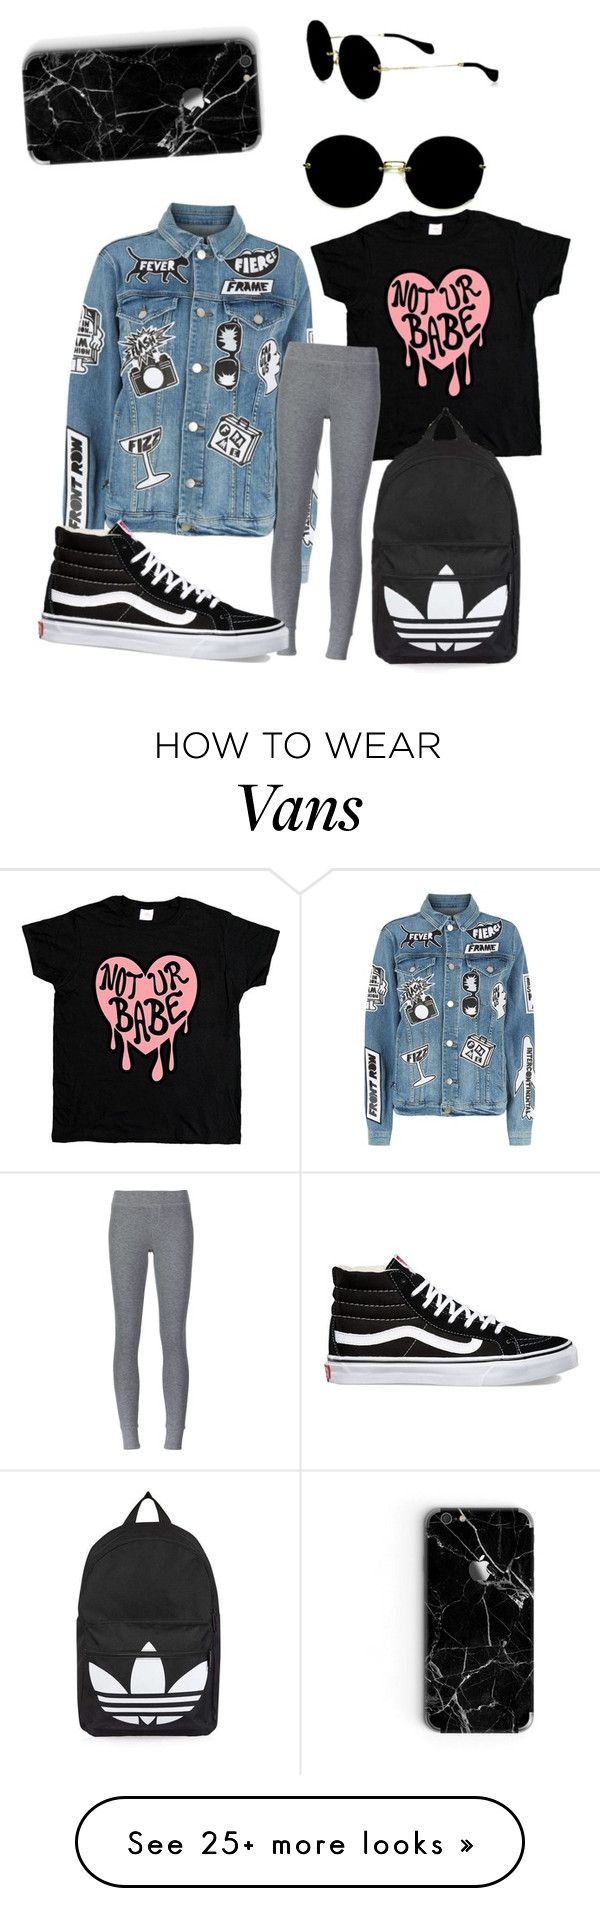 """First Day of School"" by andreamdag on Polyvore featuring Frame, ATM by Anthony Thomas Melillo, Vans, Topshop and Miu Miu"